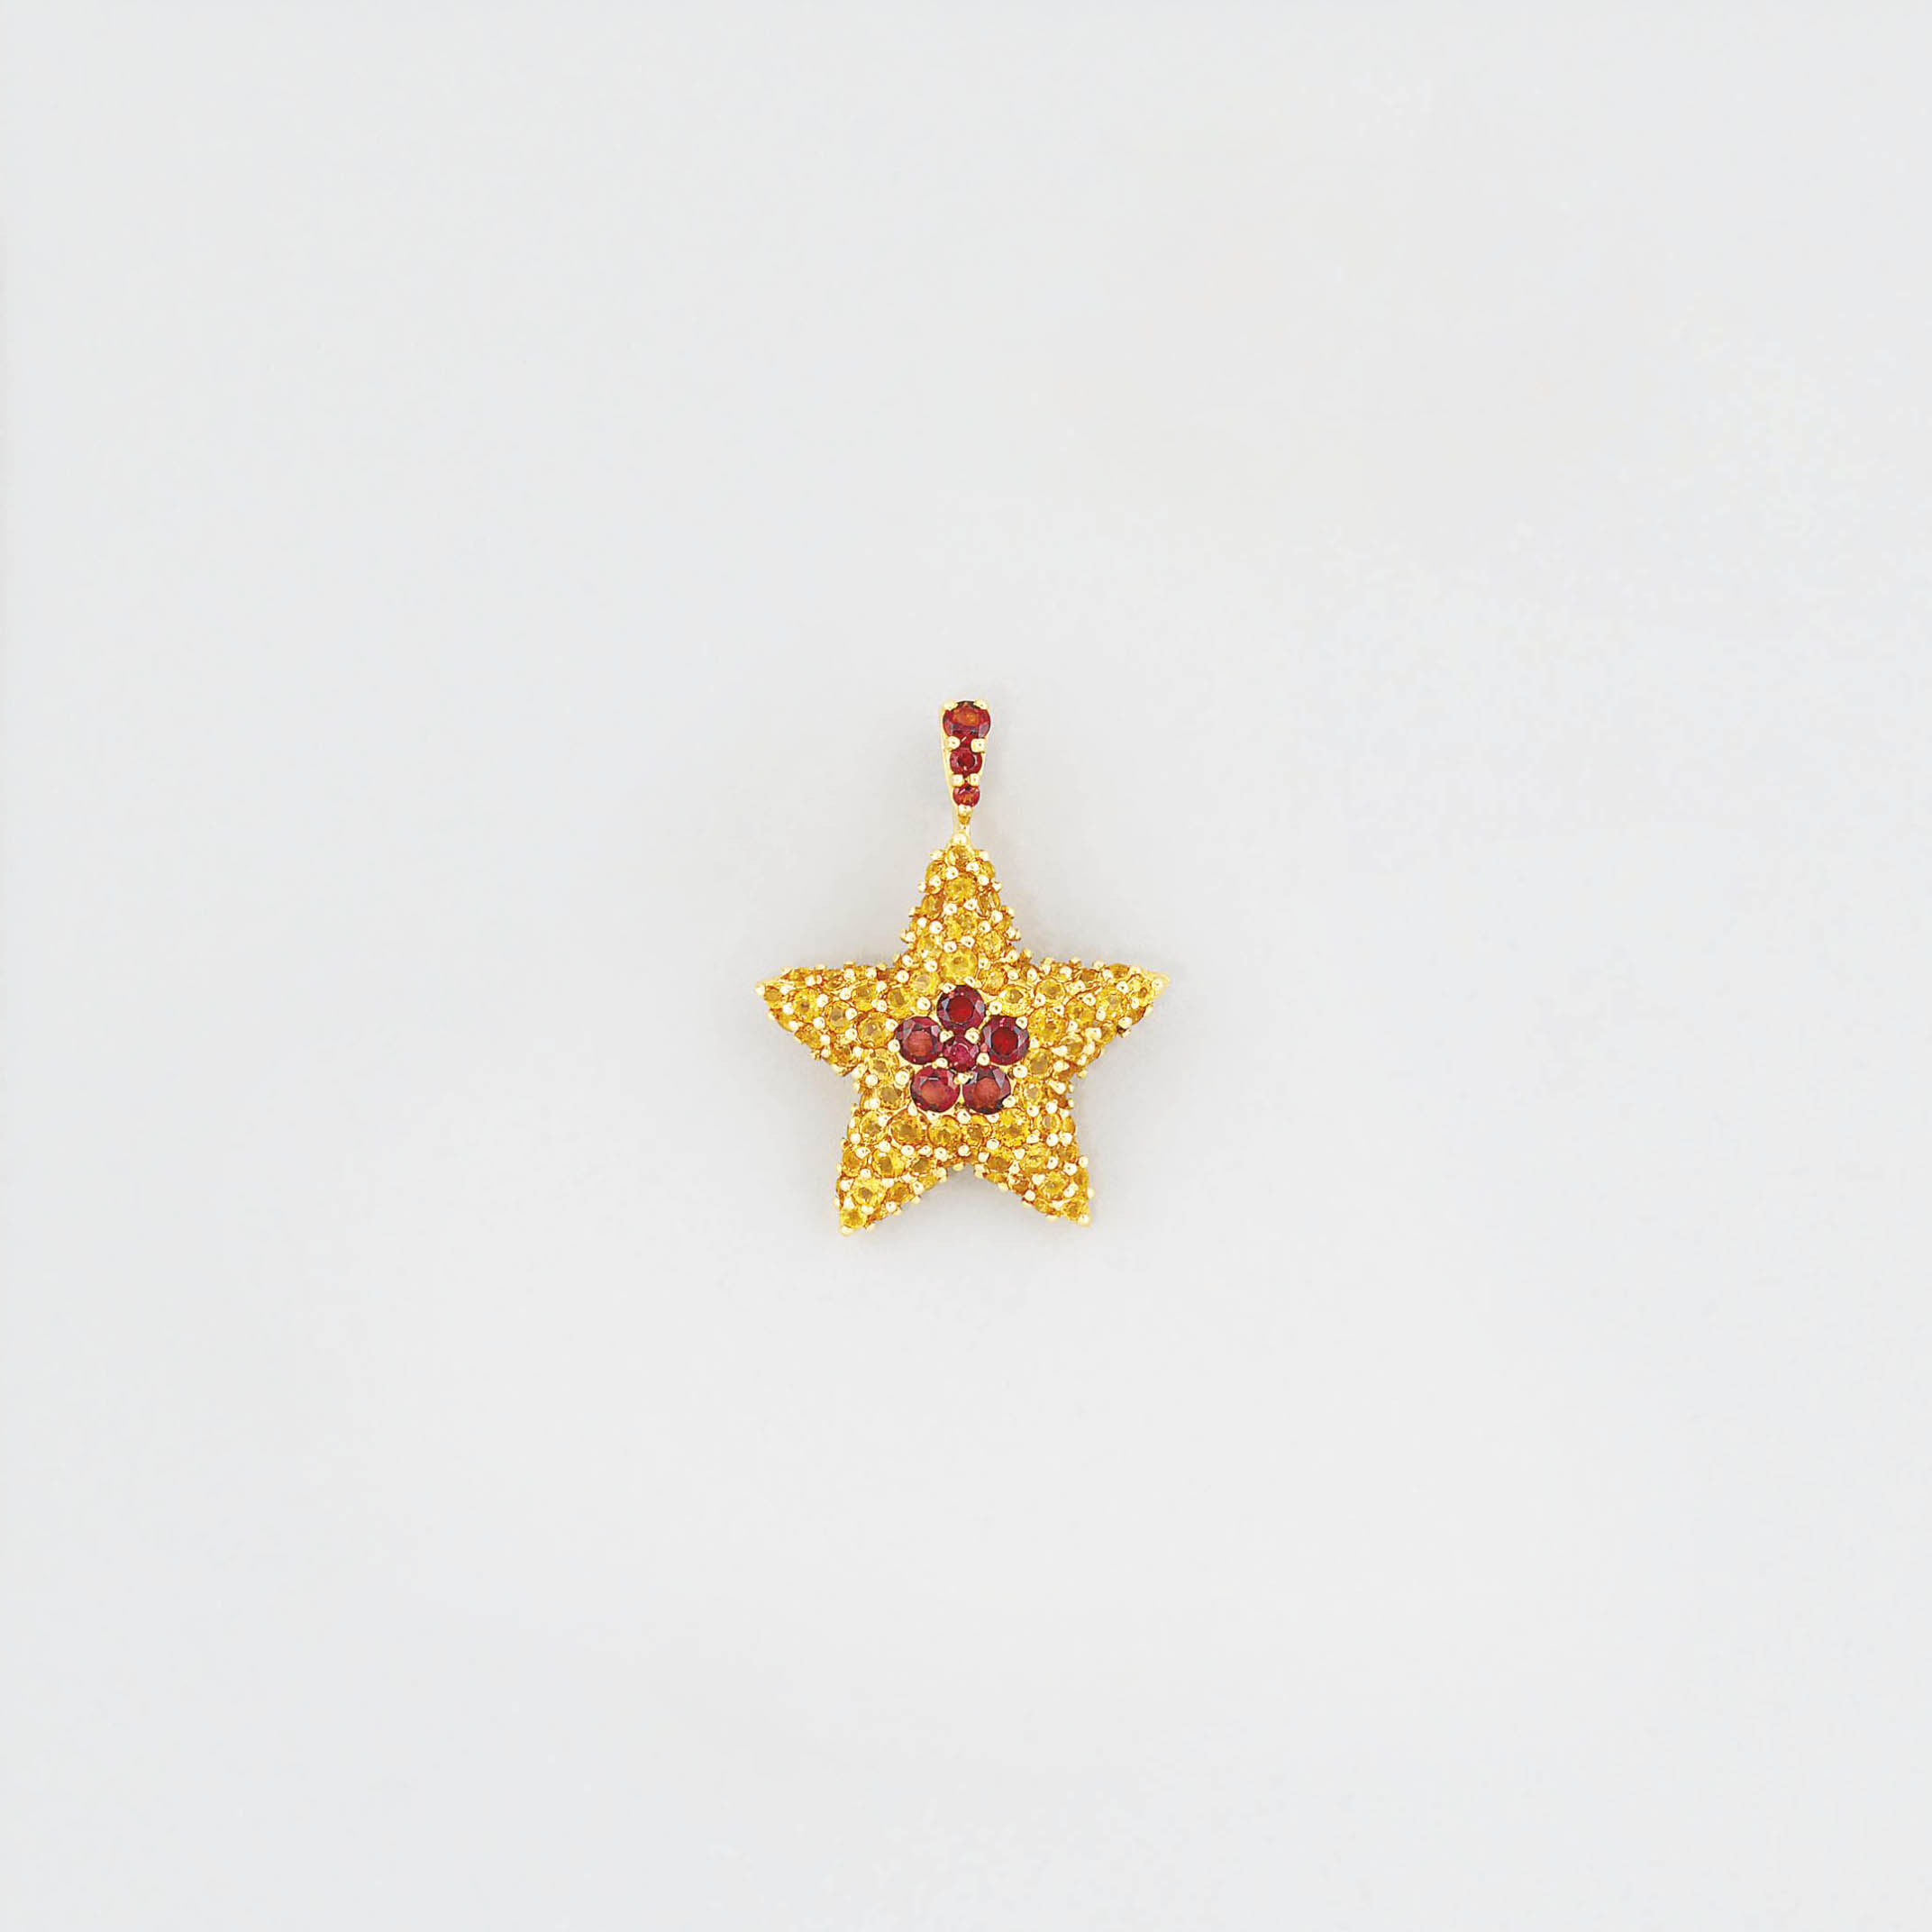 A citrine brooch/pendant, by F